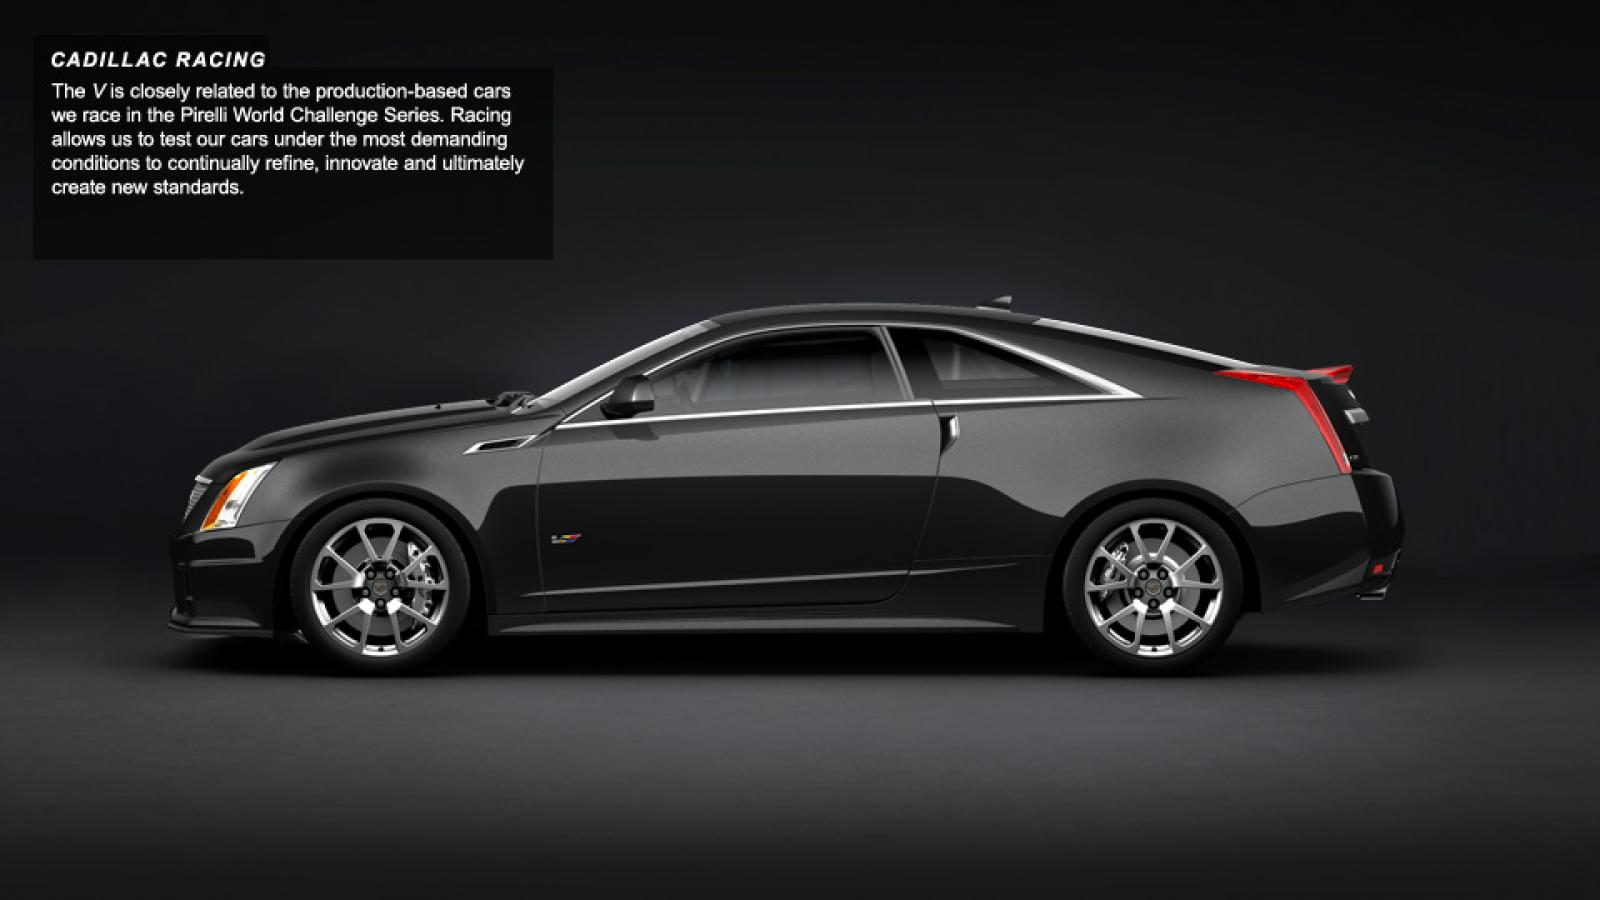 2014 cadillac cts coupe information and photos zombiedrive. Black Bedroom Furniture Sets. Home Design Ideas